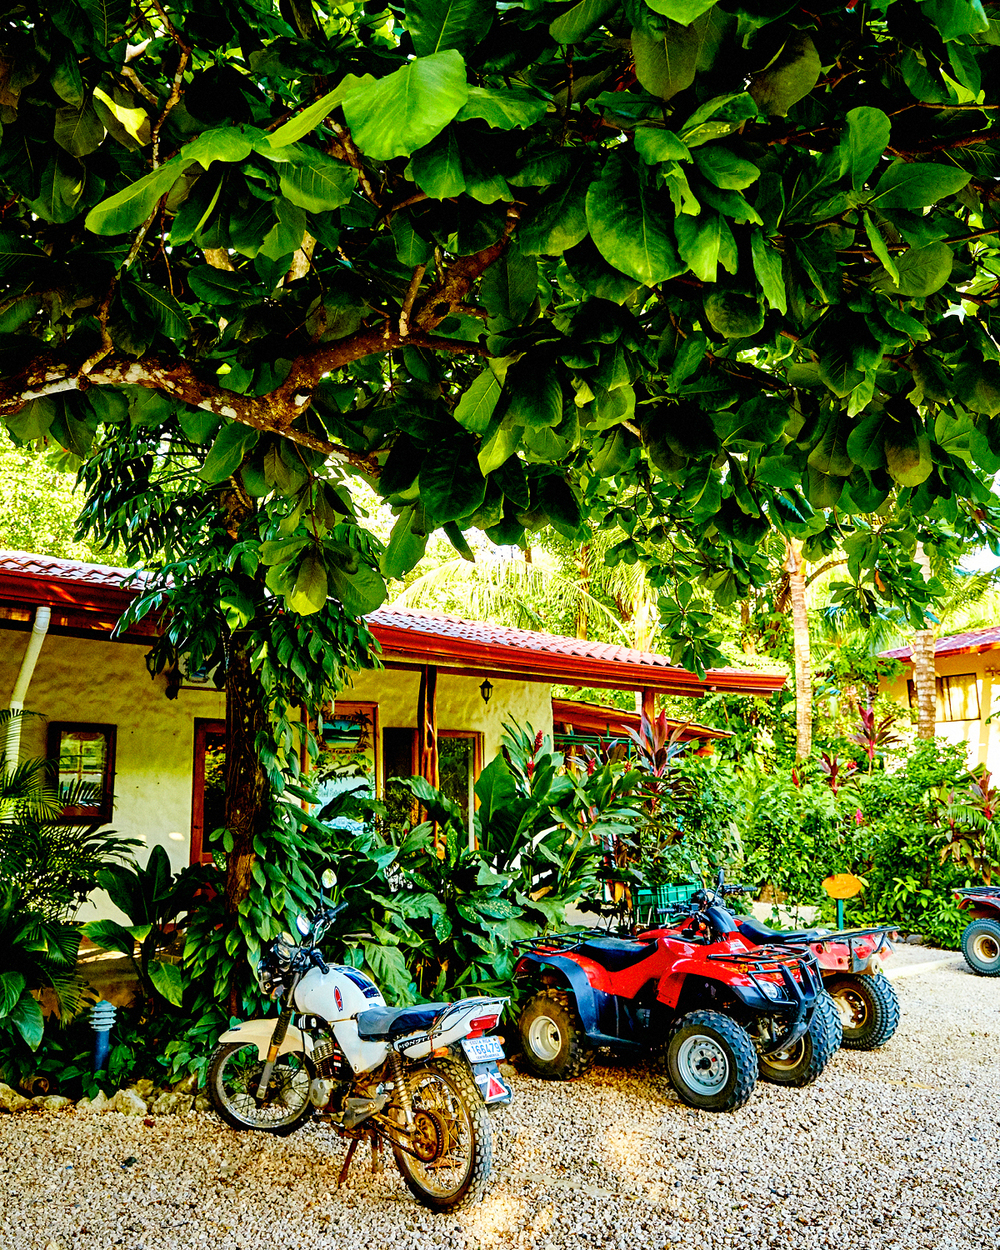 FOUR WHEELER ATV RENTALS AT MOST HOTELS